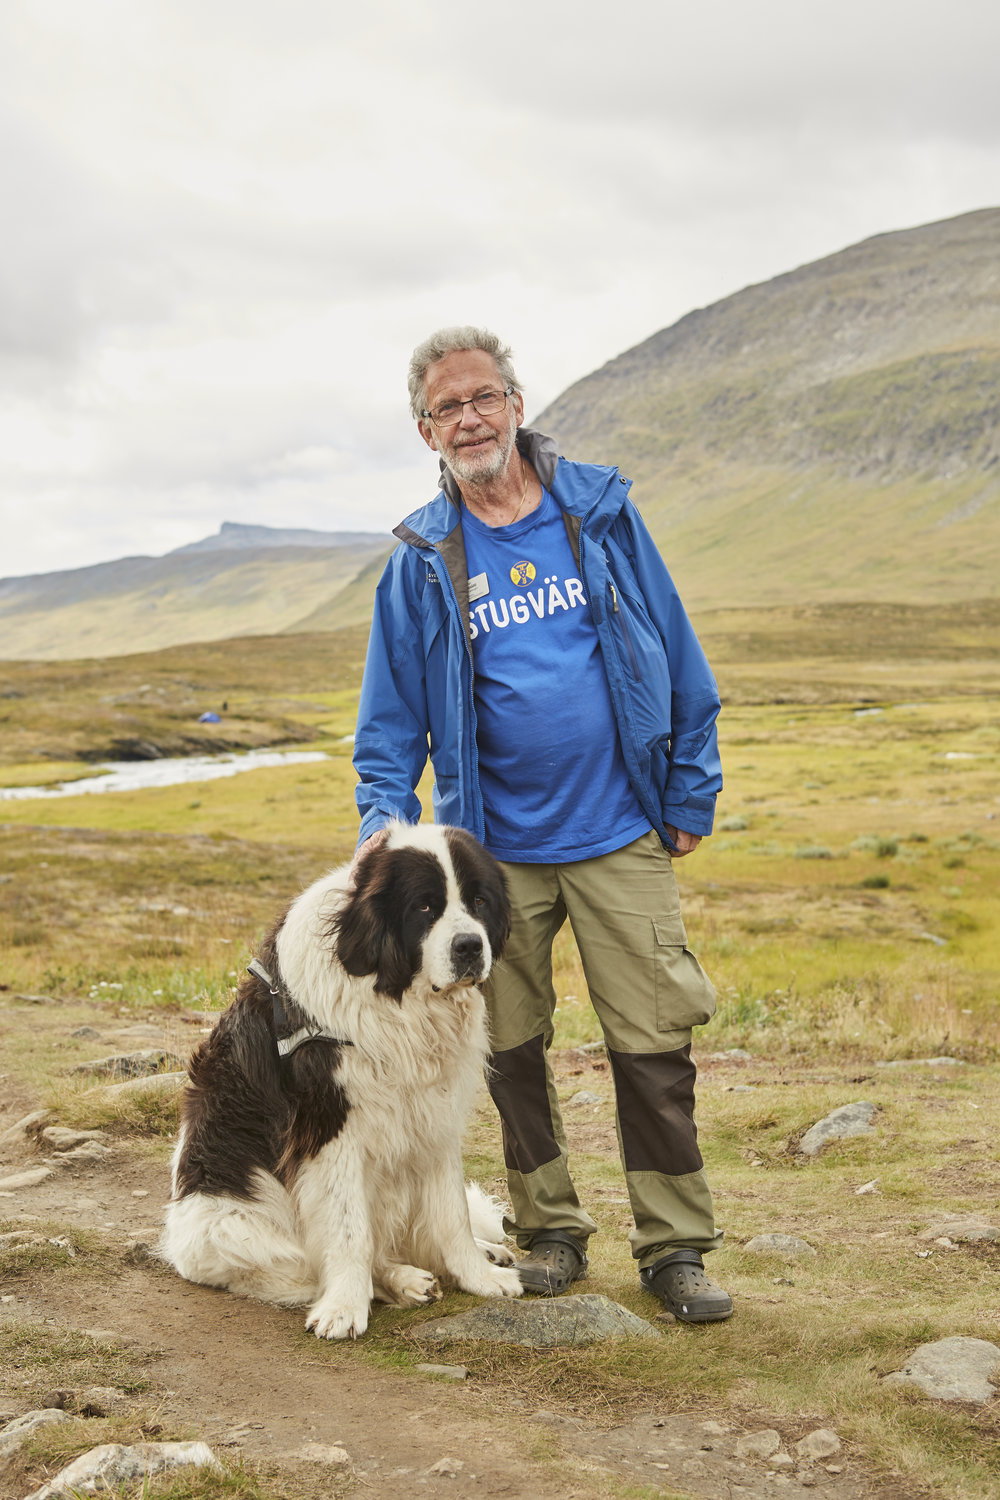 Portraits shot on Sweden's Arctic Circle Kungsleden King's Trail for Scandinavian Traveller Magazine SAS Airline